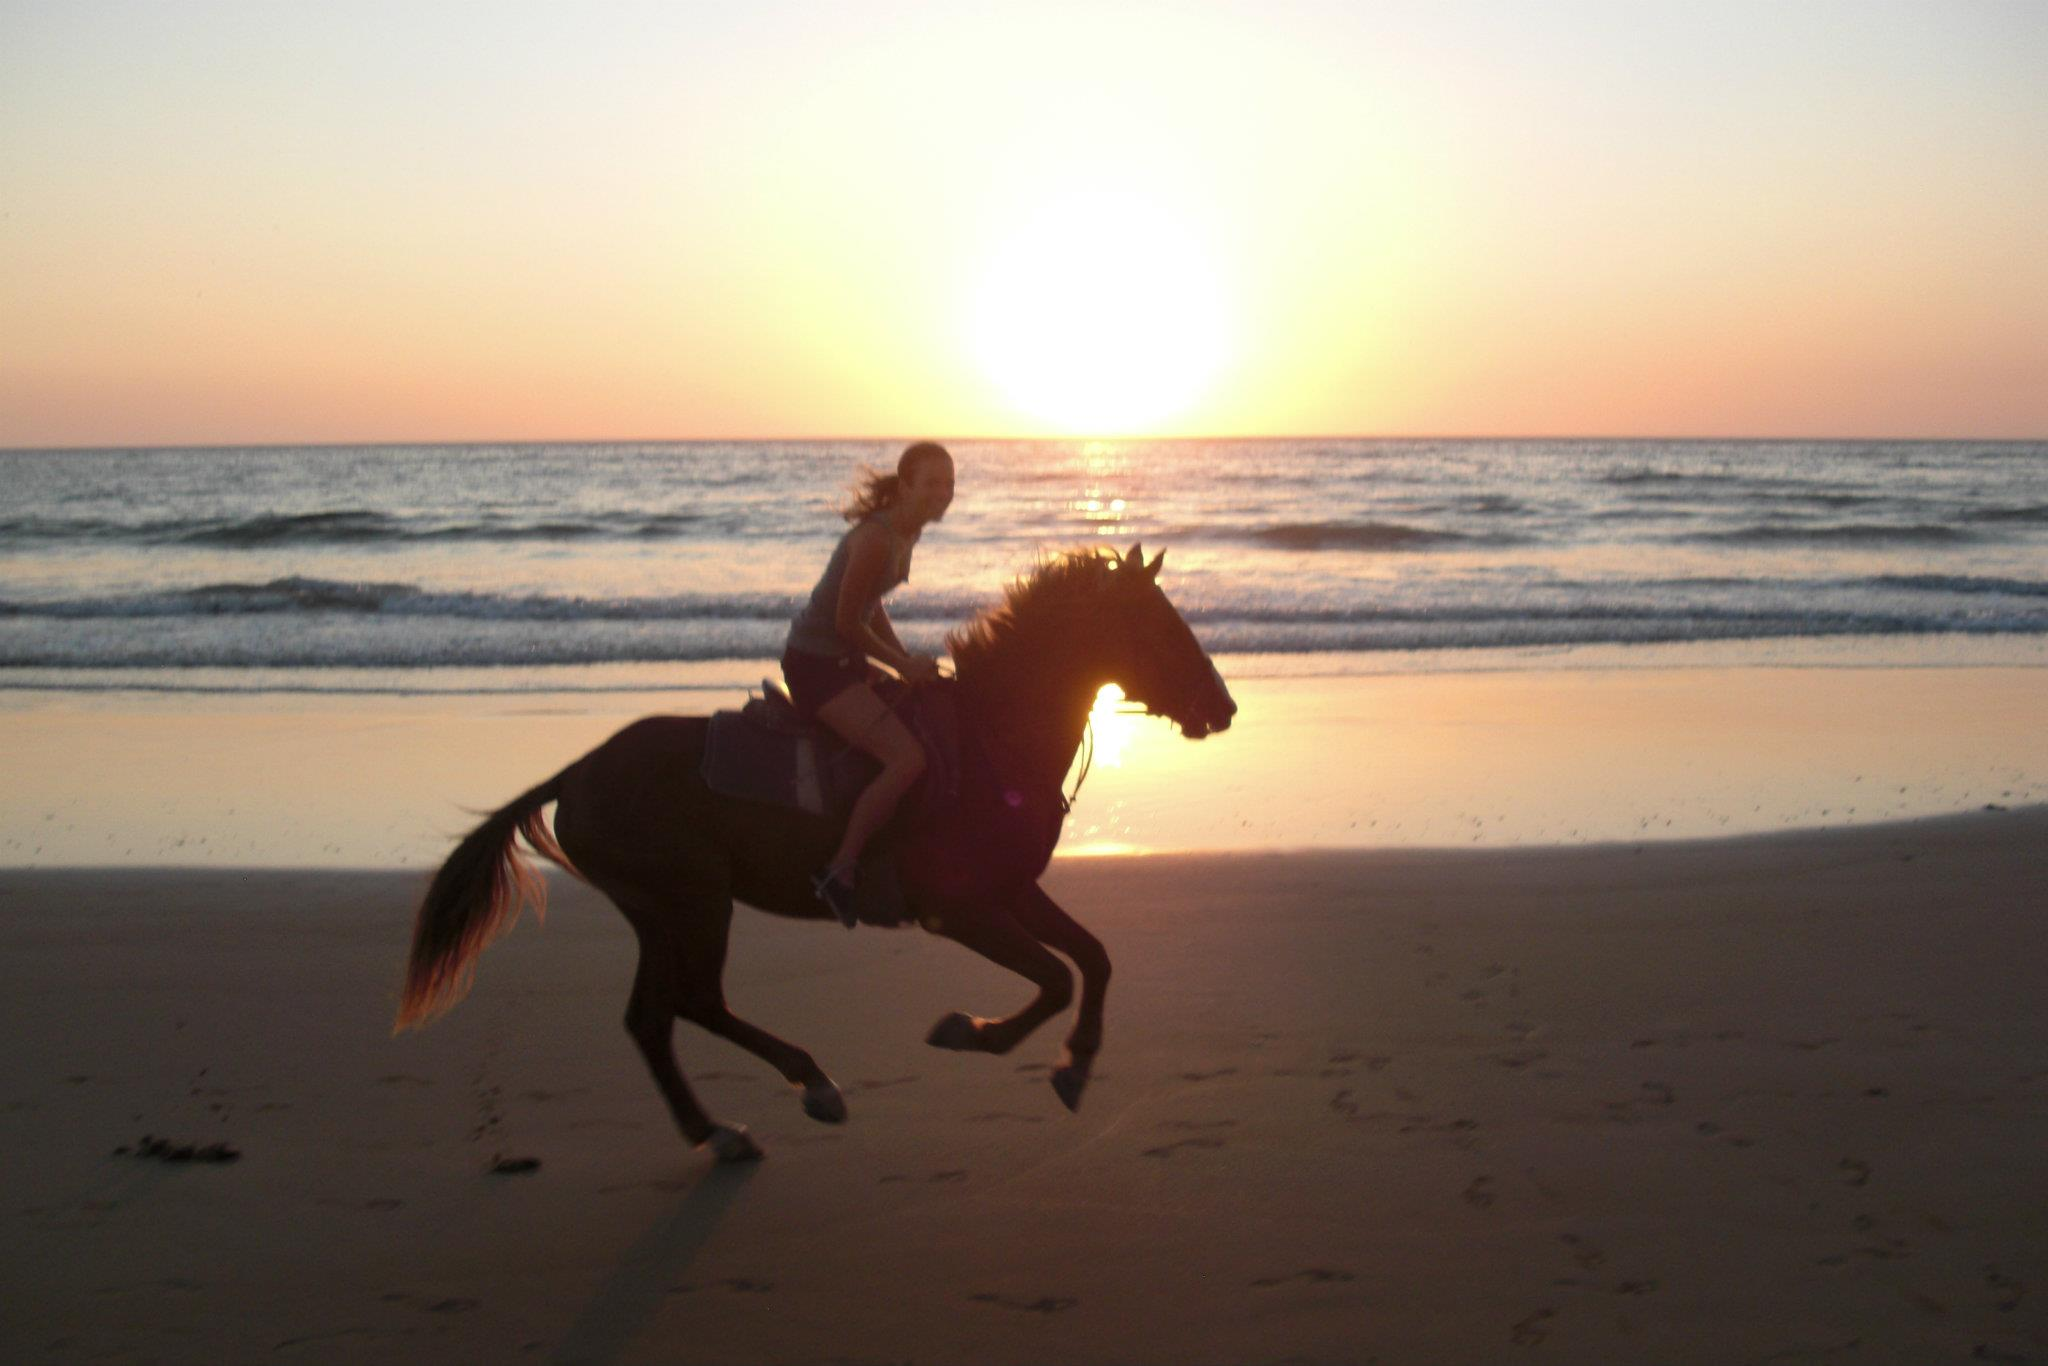 Sunset horseride at Crocs beach |The Spot Morocco, Surf camp Morocco, Surfing Morocco, Surf Morocco, Surf School Morocco, Surf Holidays in Morocco, Surf Taghazout